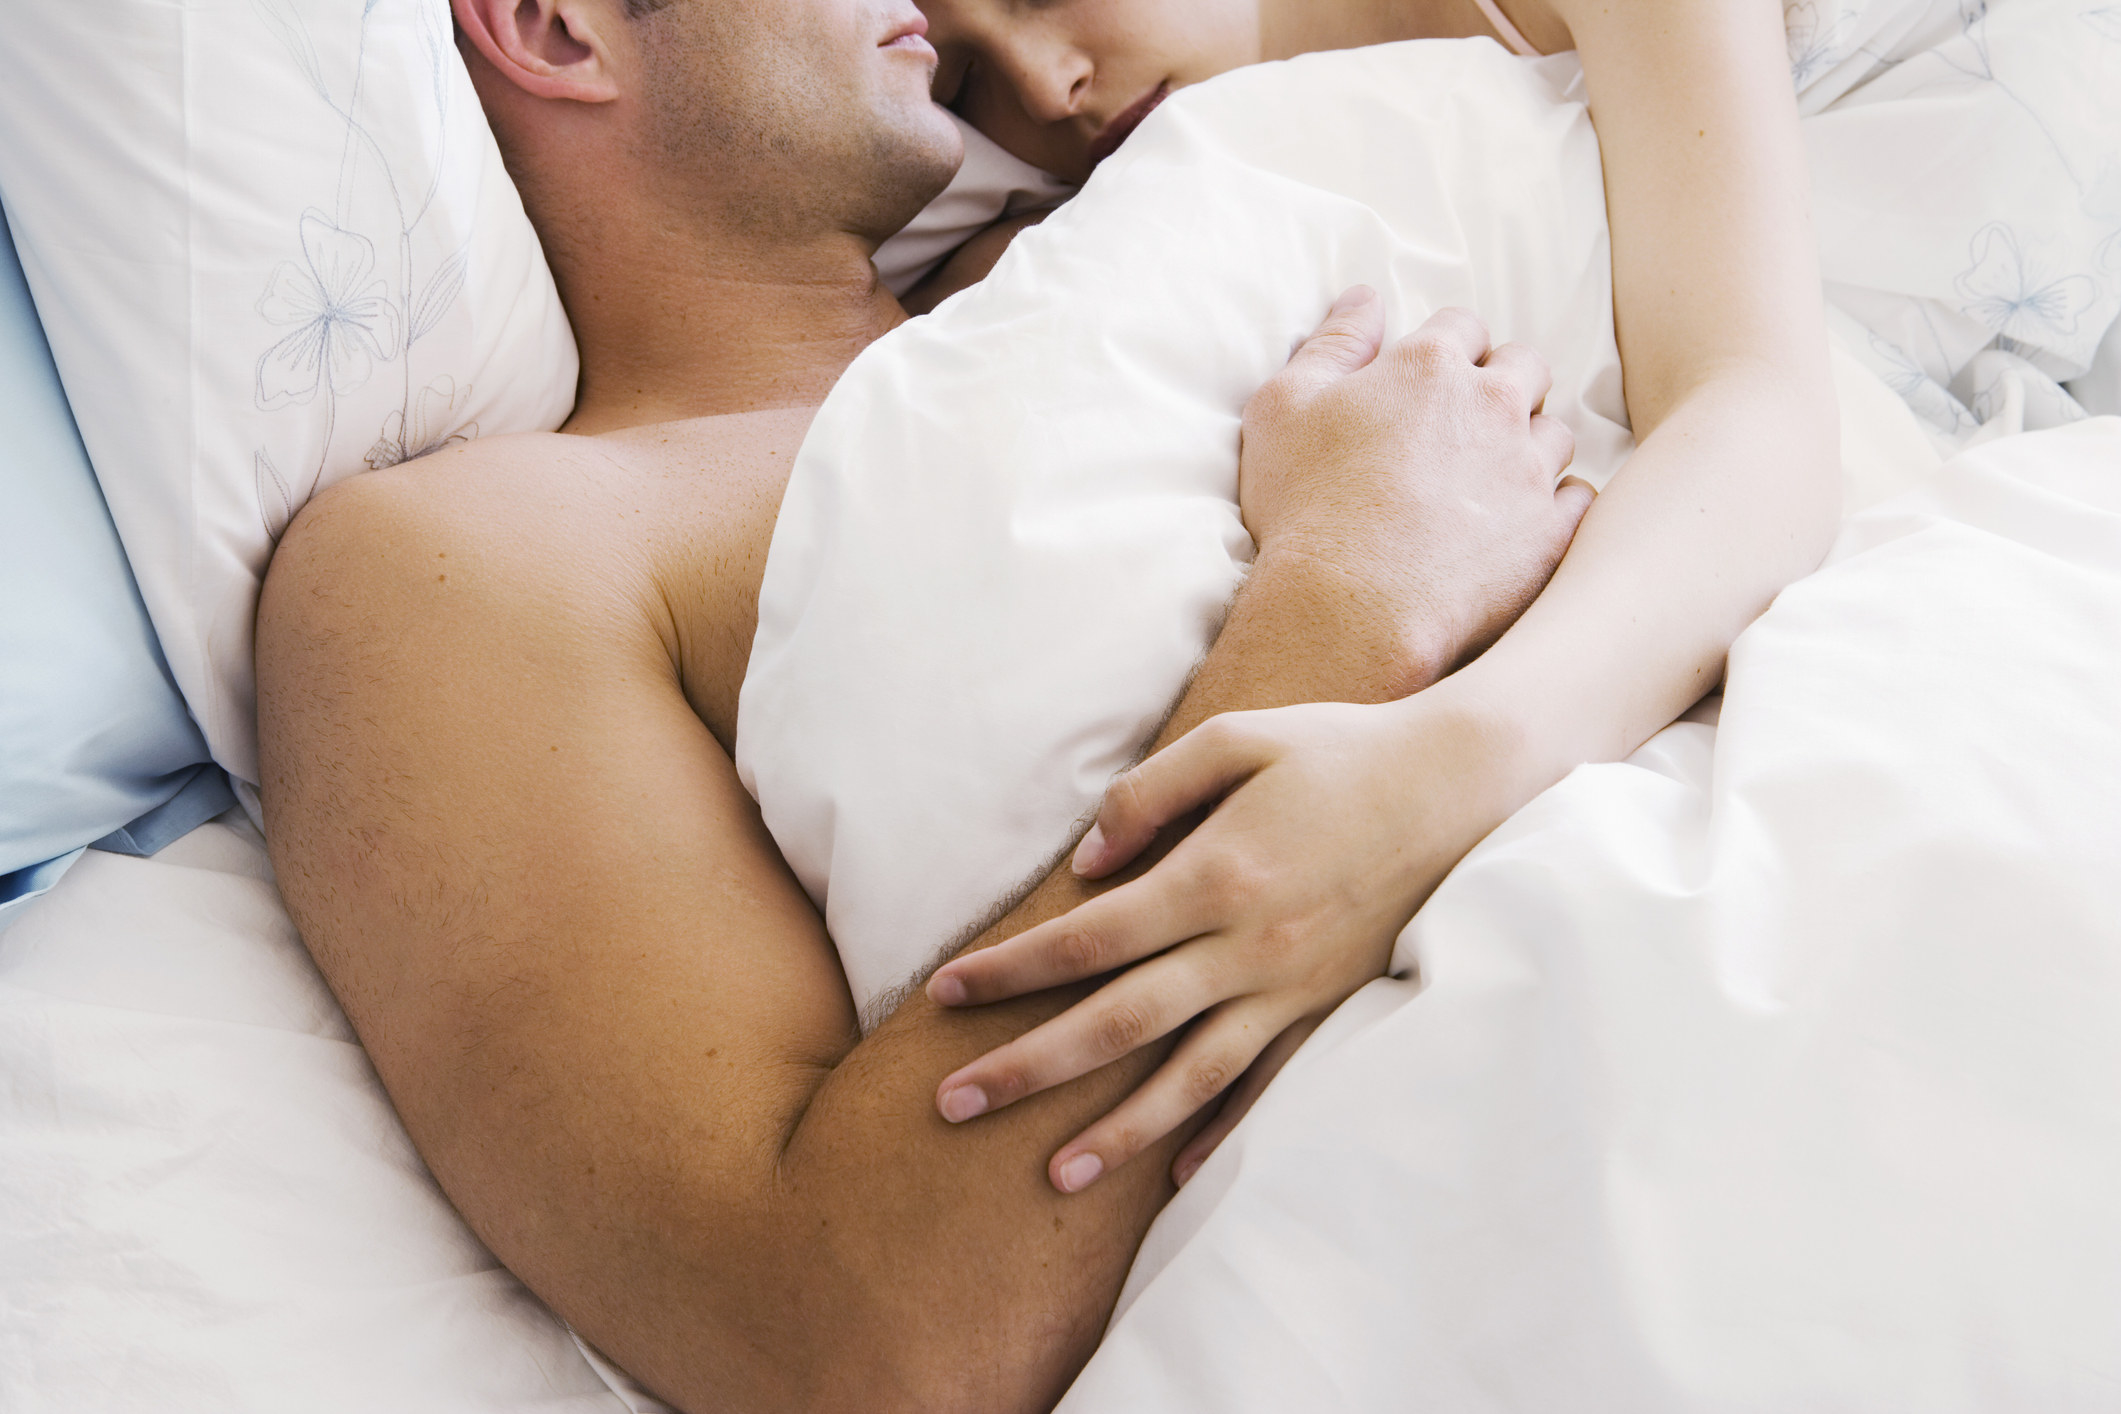 two people in bed snuggling